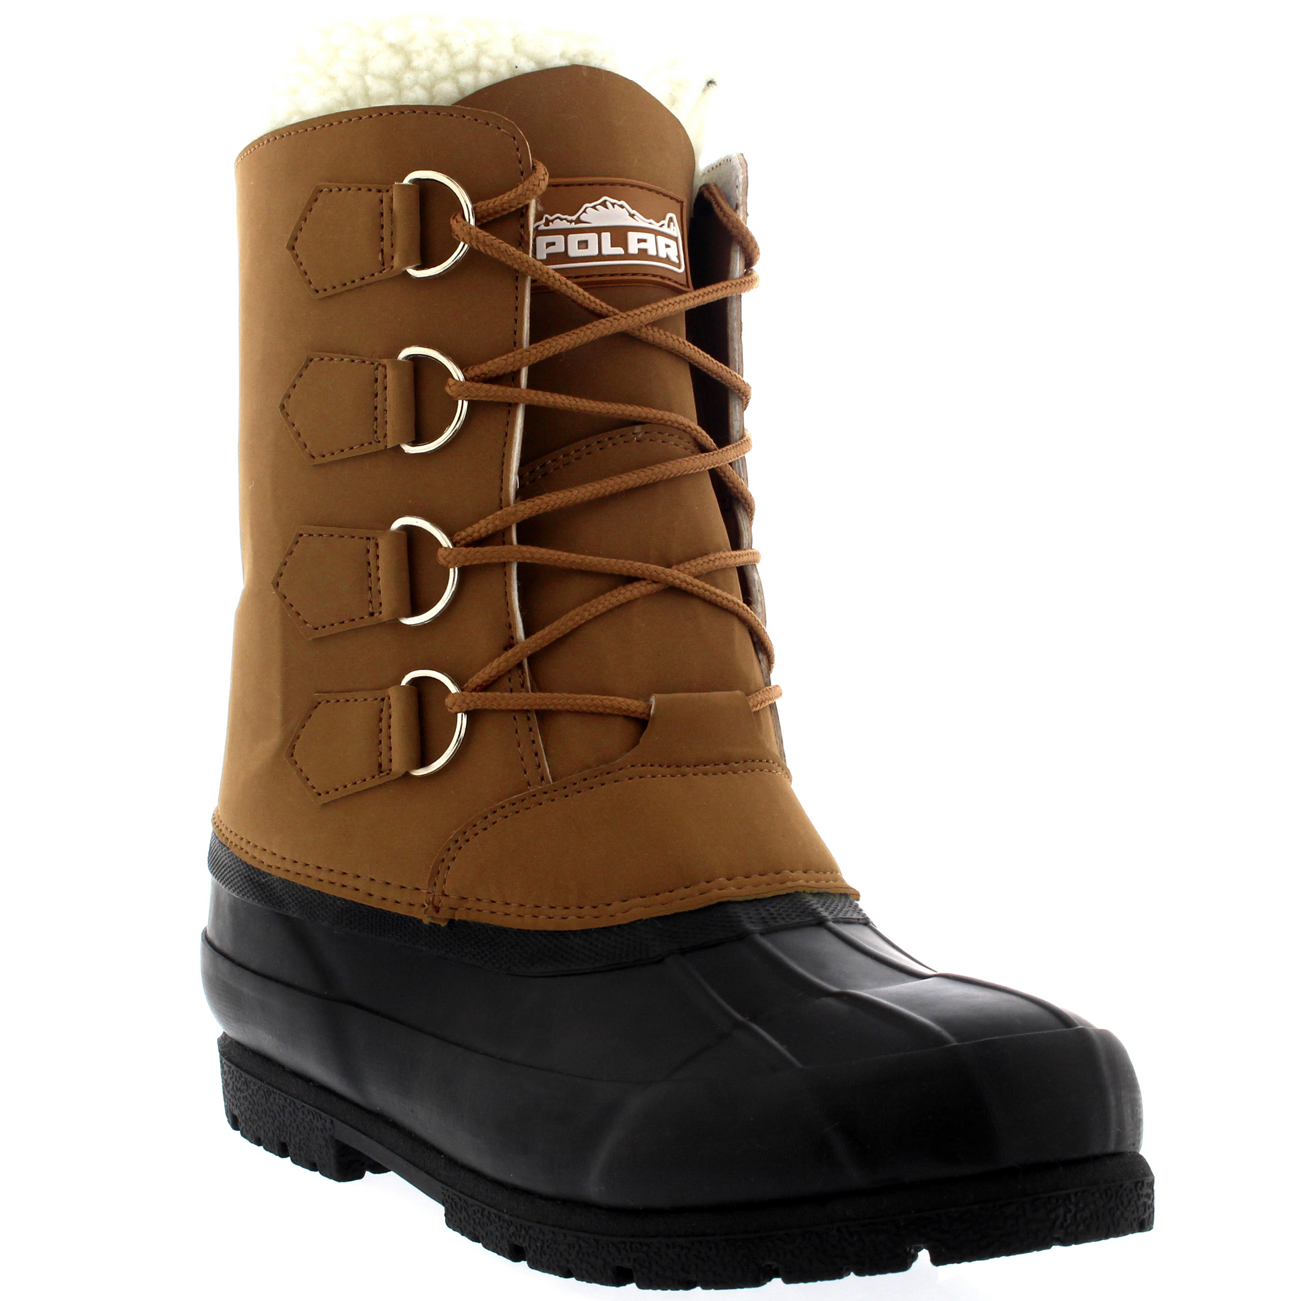 Mens Wool Lined 100% Rubber Duck Sole Outdoor Cold Weather ...